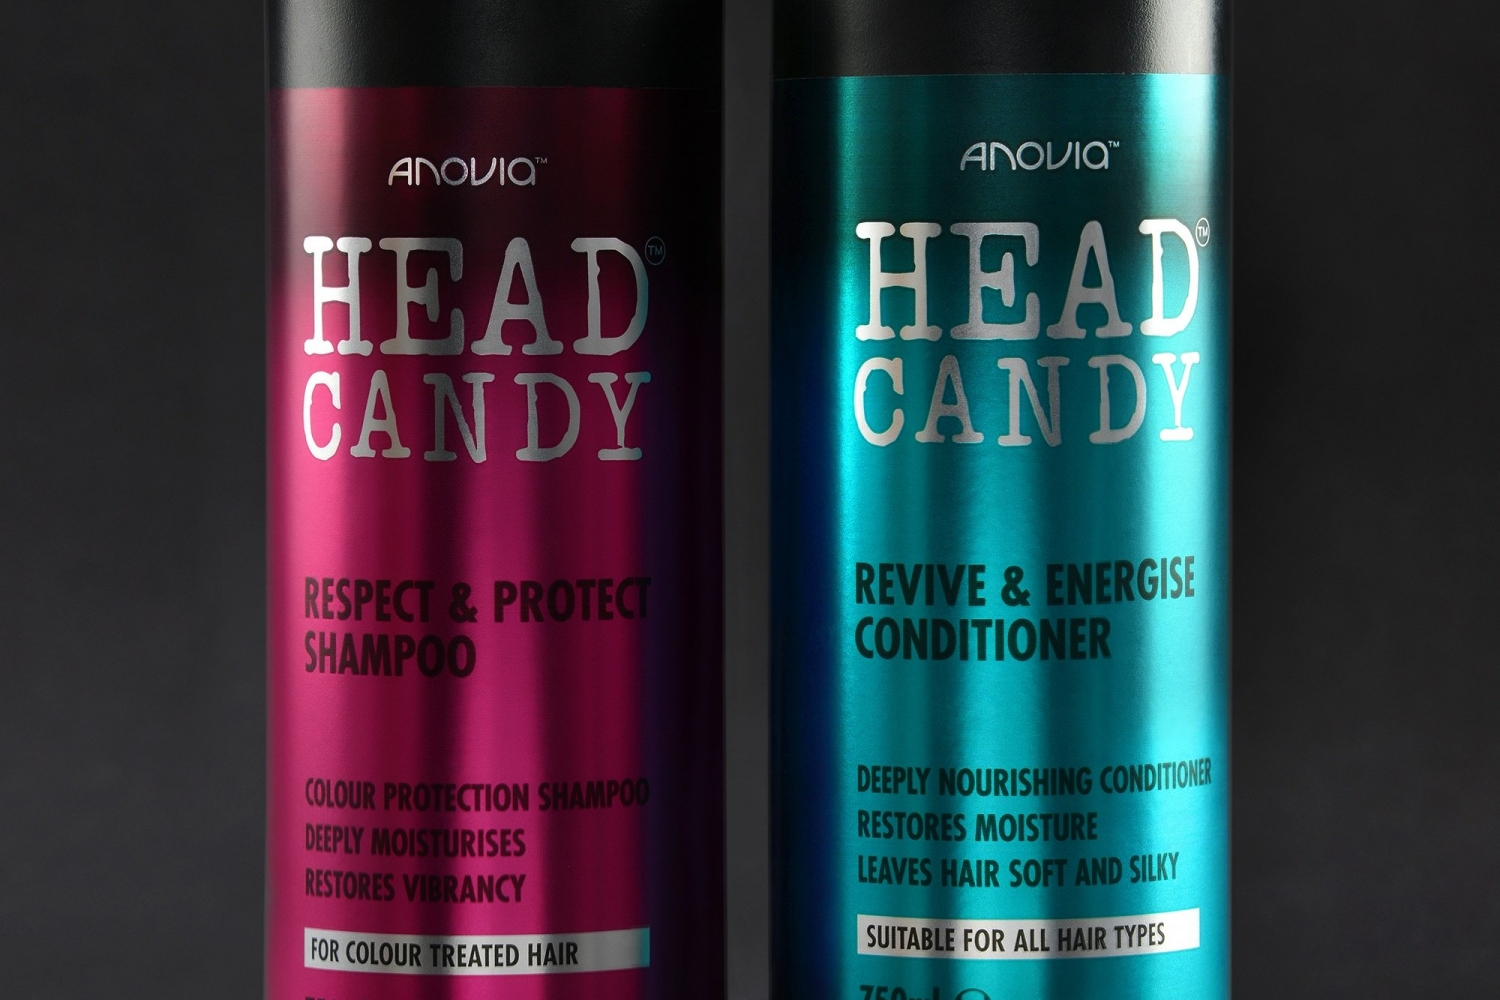 Head Candy 1